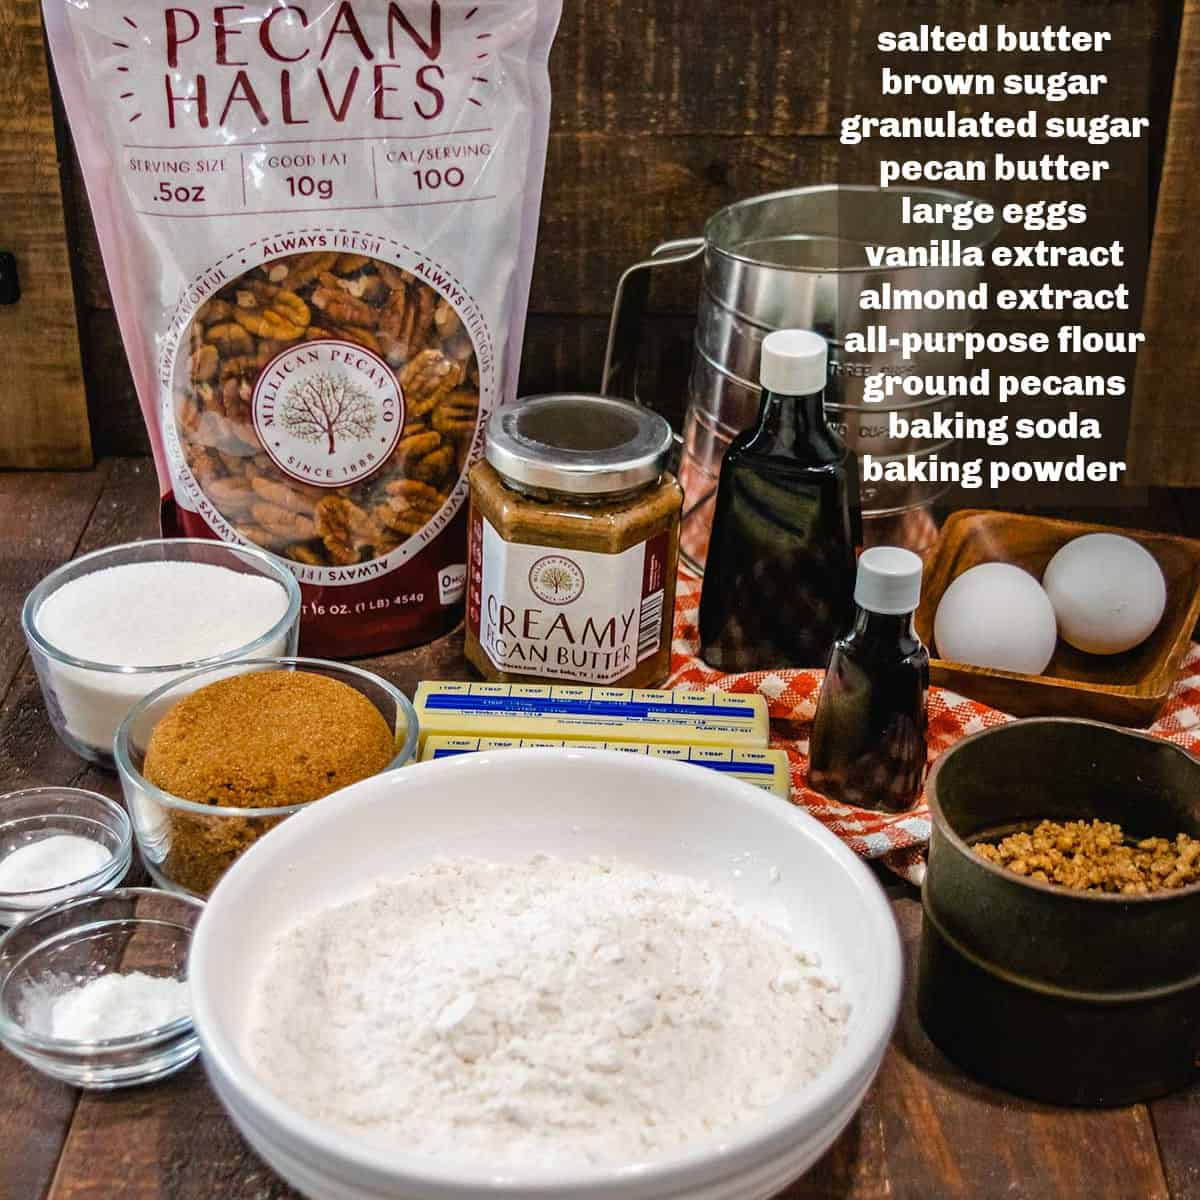 Image of labeled ingredients for chewy pecan butter cookies.